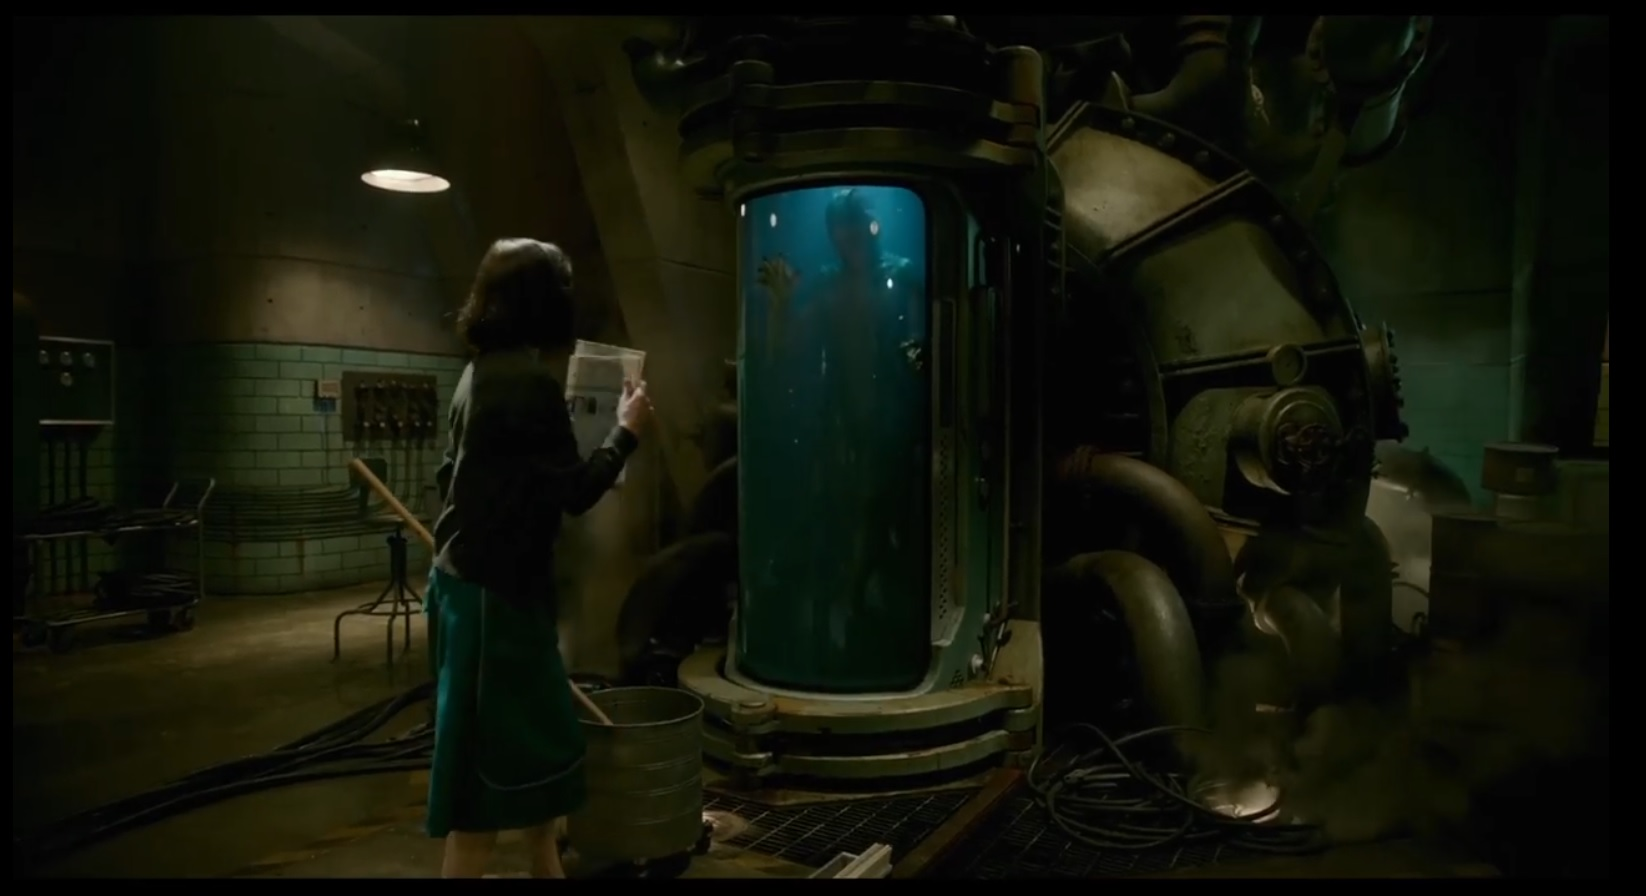 Is The Shape of Water a Hellboy Spin-Off? - Zombies in My Blog